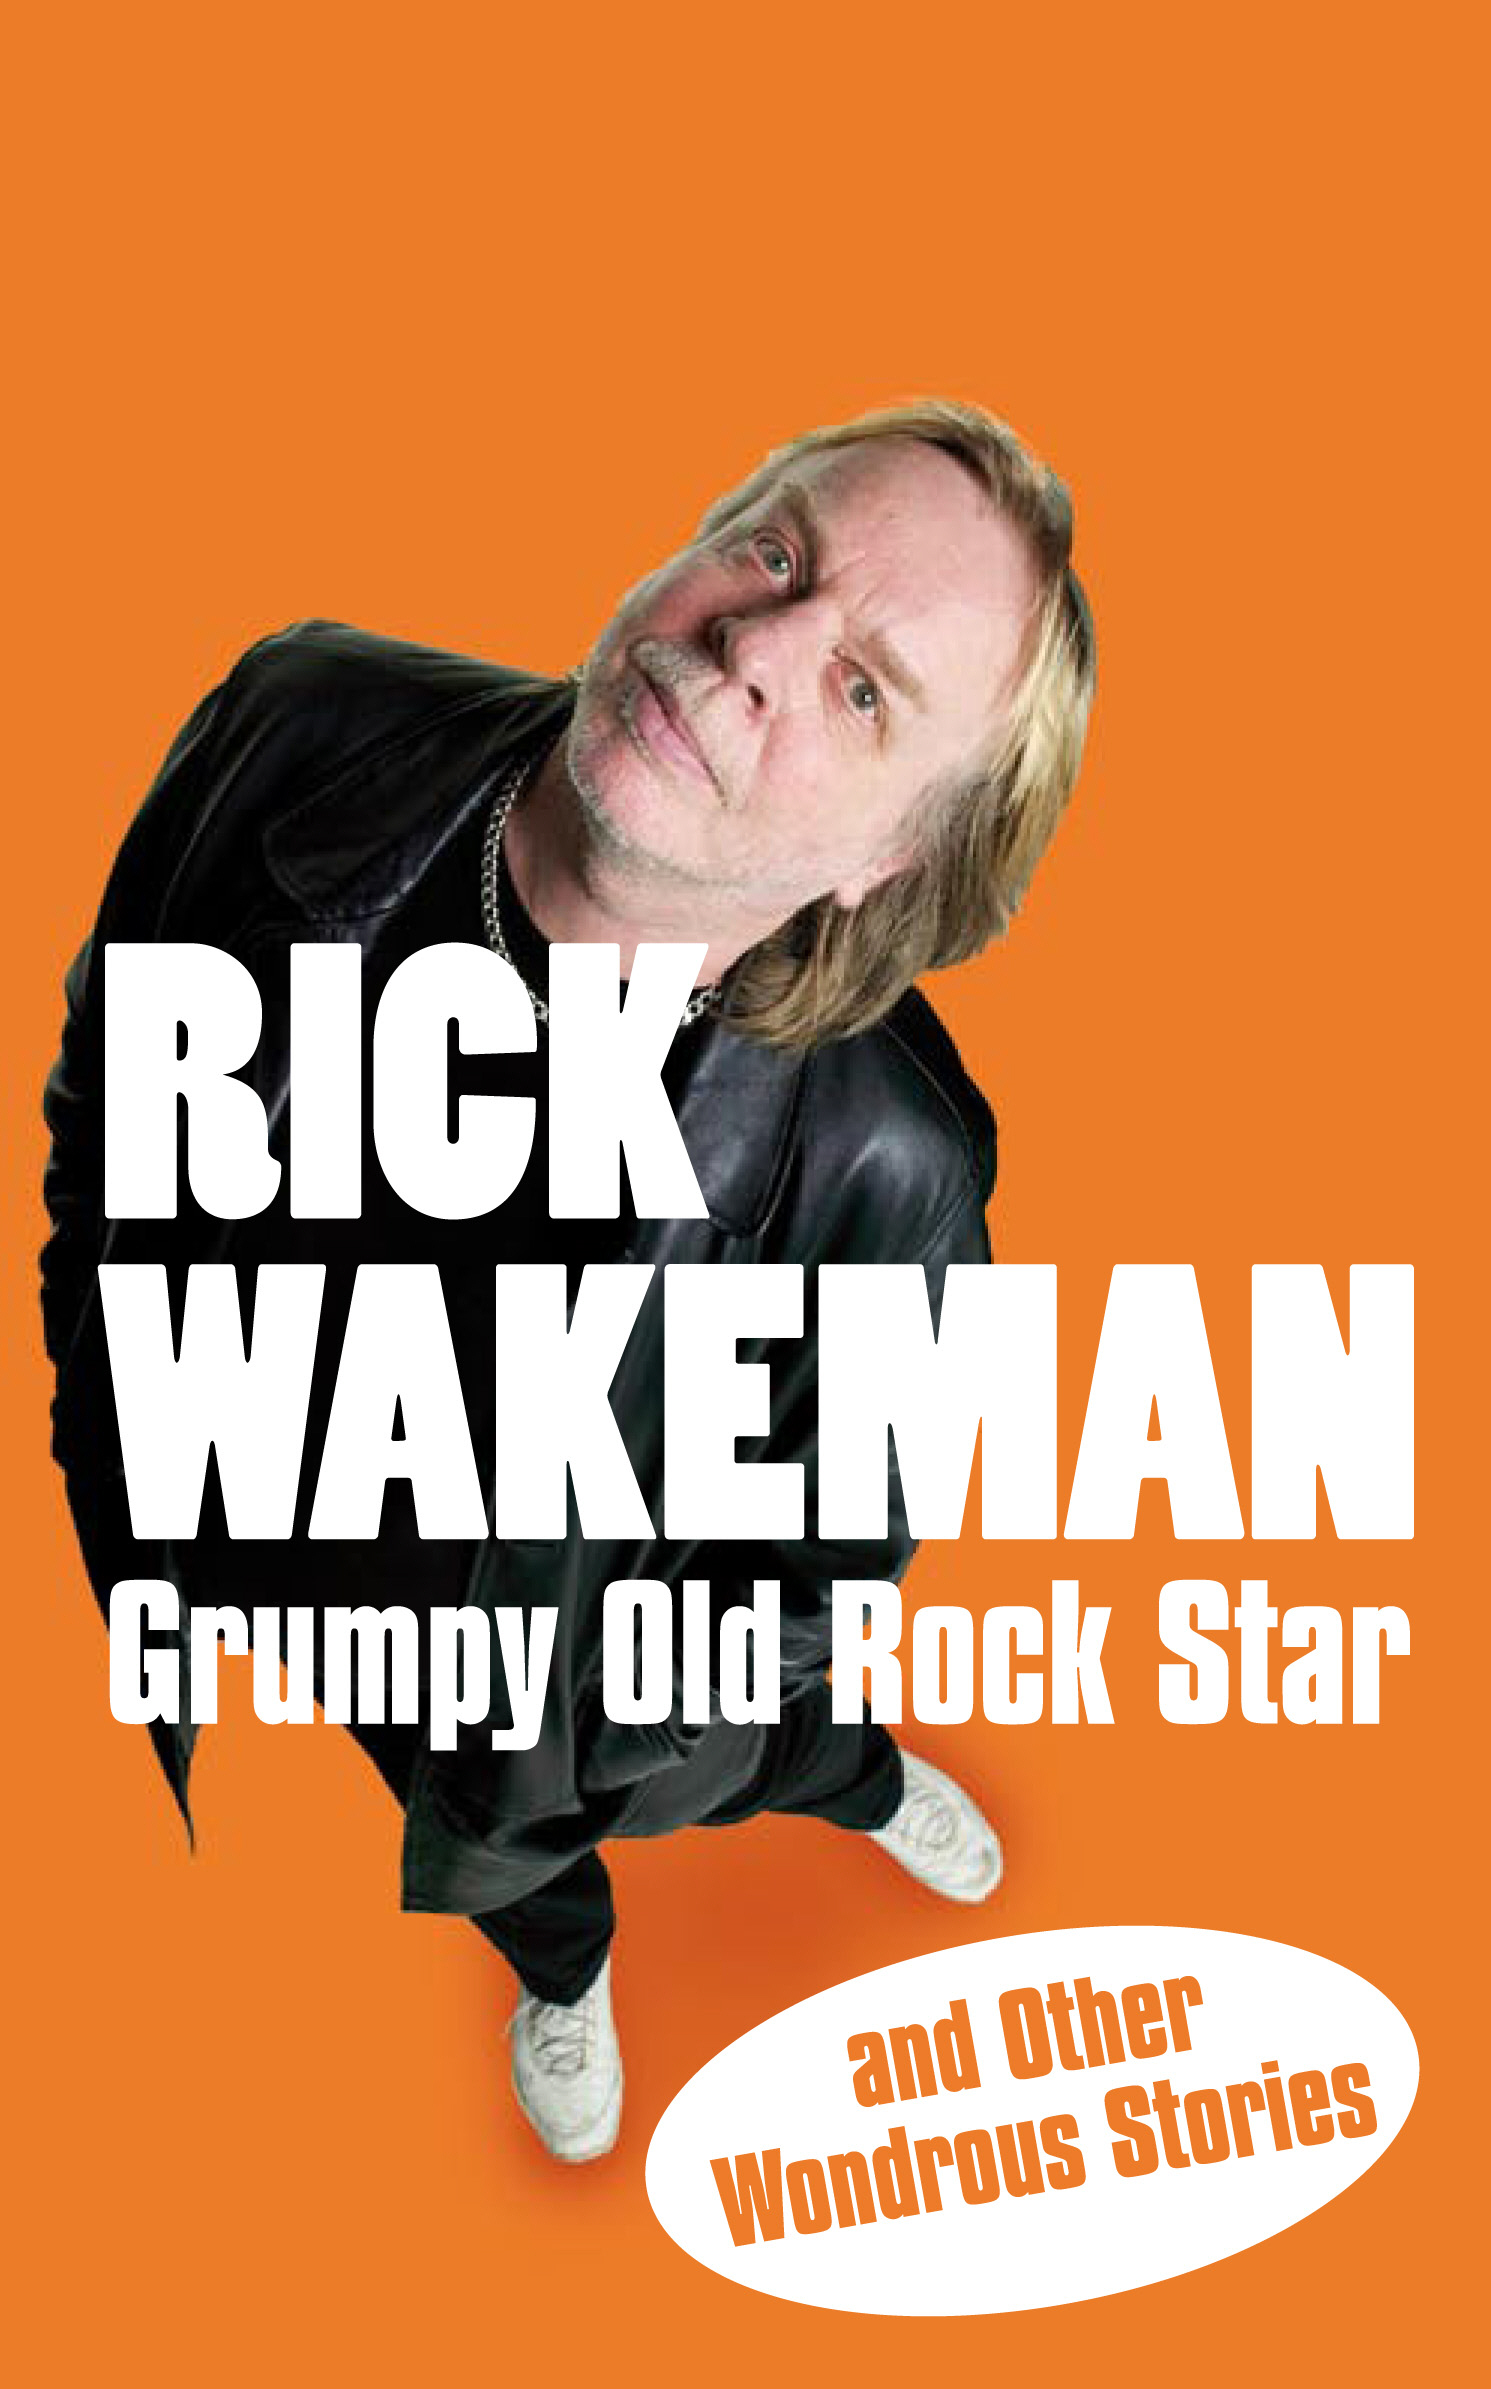 Grumpy Old Rock Star and Other Wondrous Stories